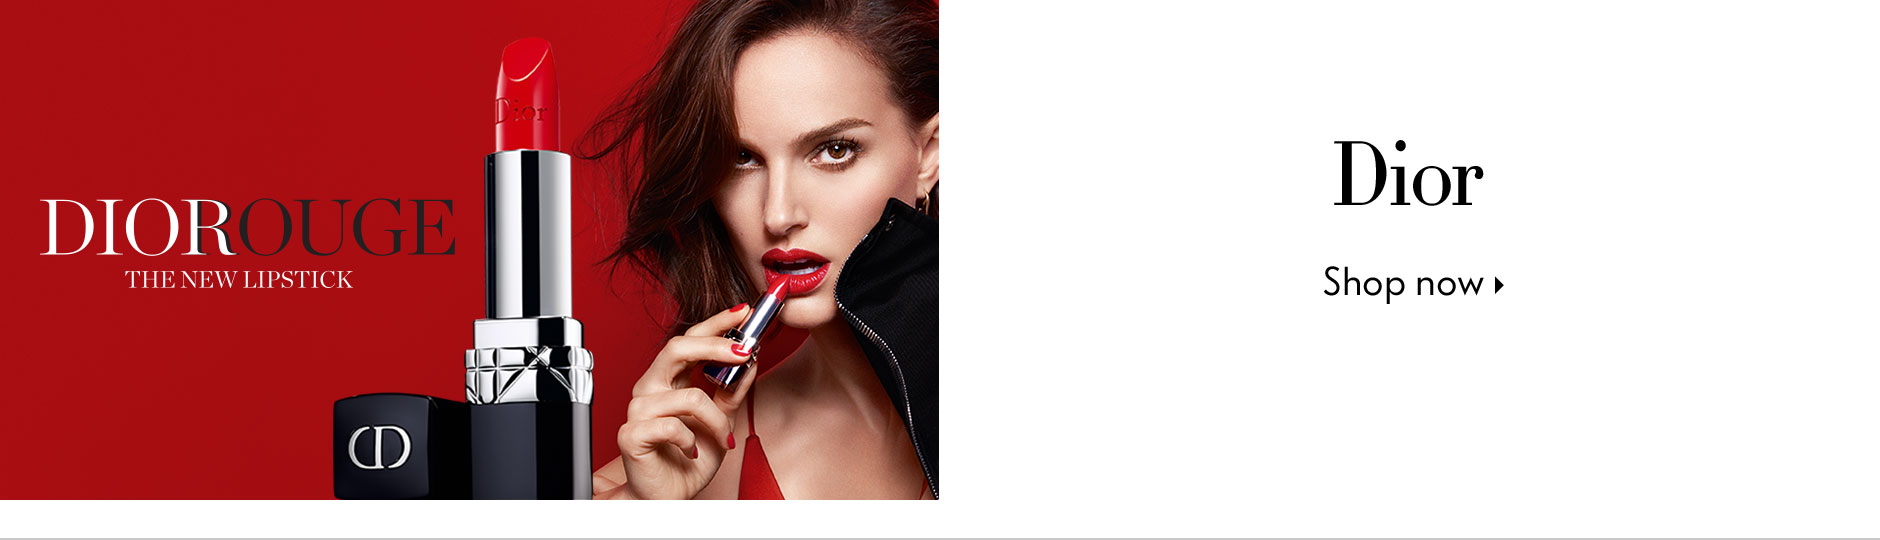 Dior: Rouge - The New Lipstick